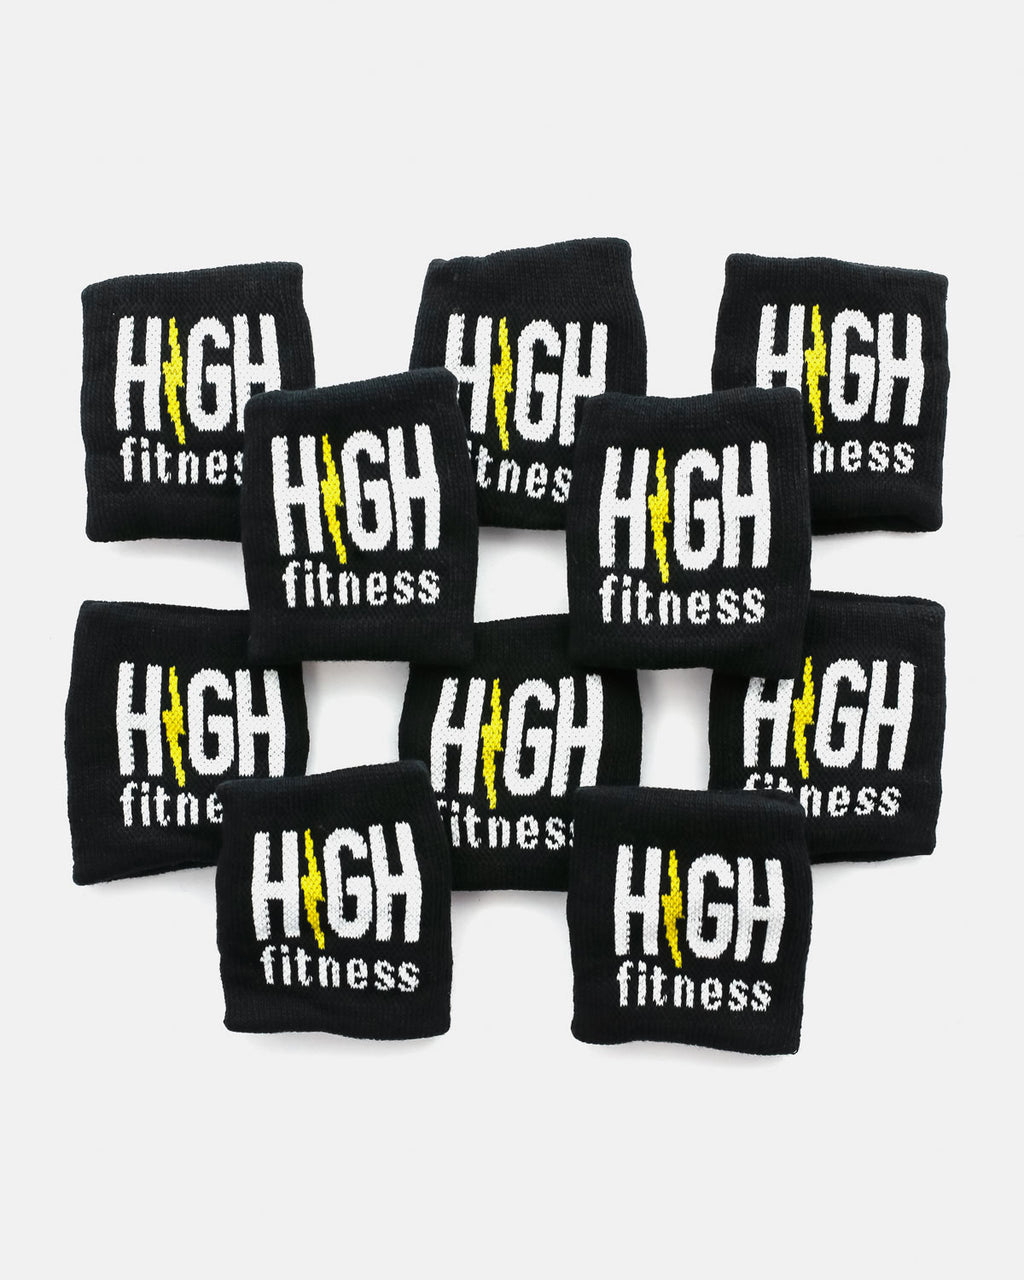 Black High Fitness Sweatbands -10 Pack